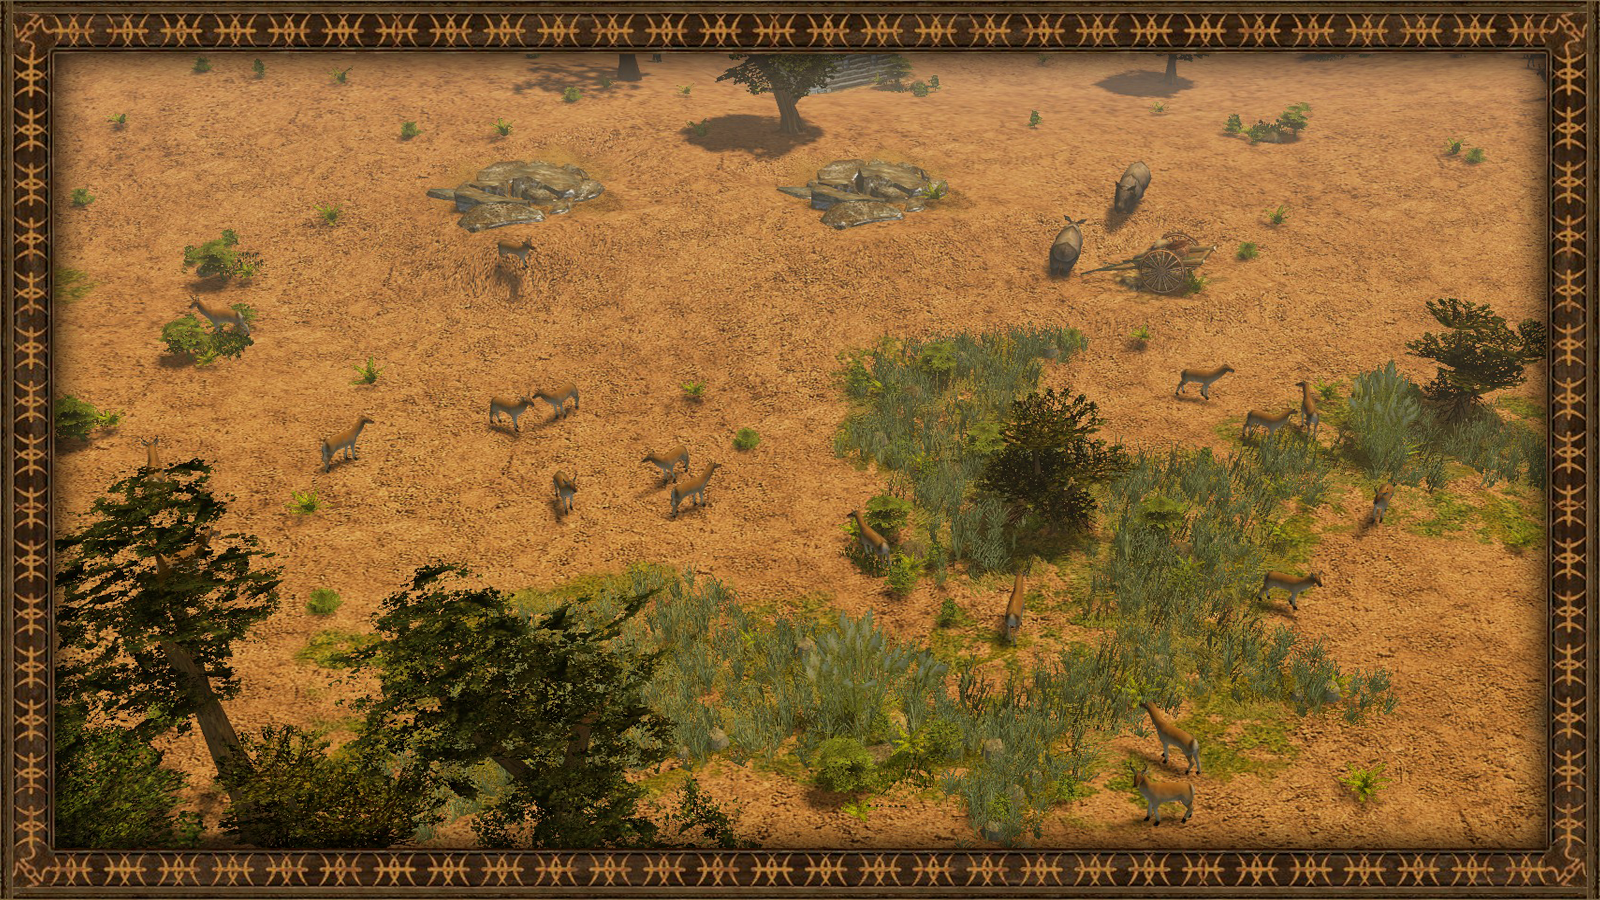 Terrain with some impalas and rhinocerae